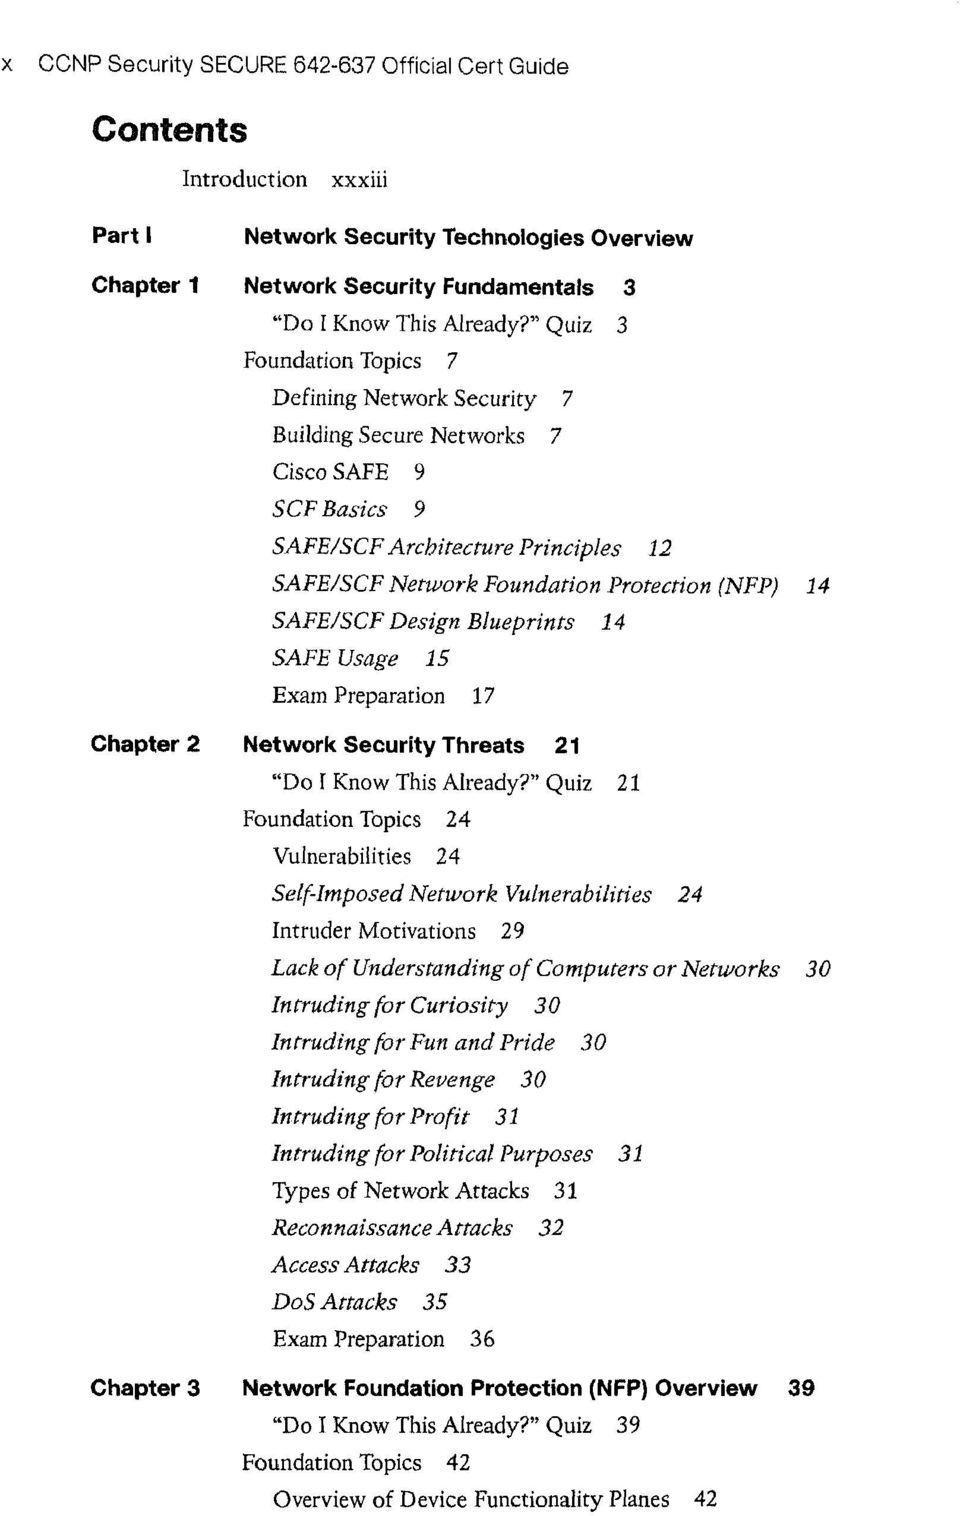 CCNP Security SECURE - PDF